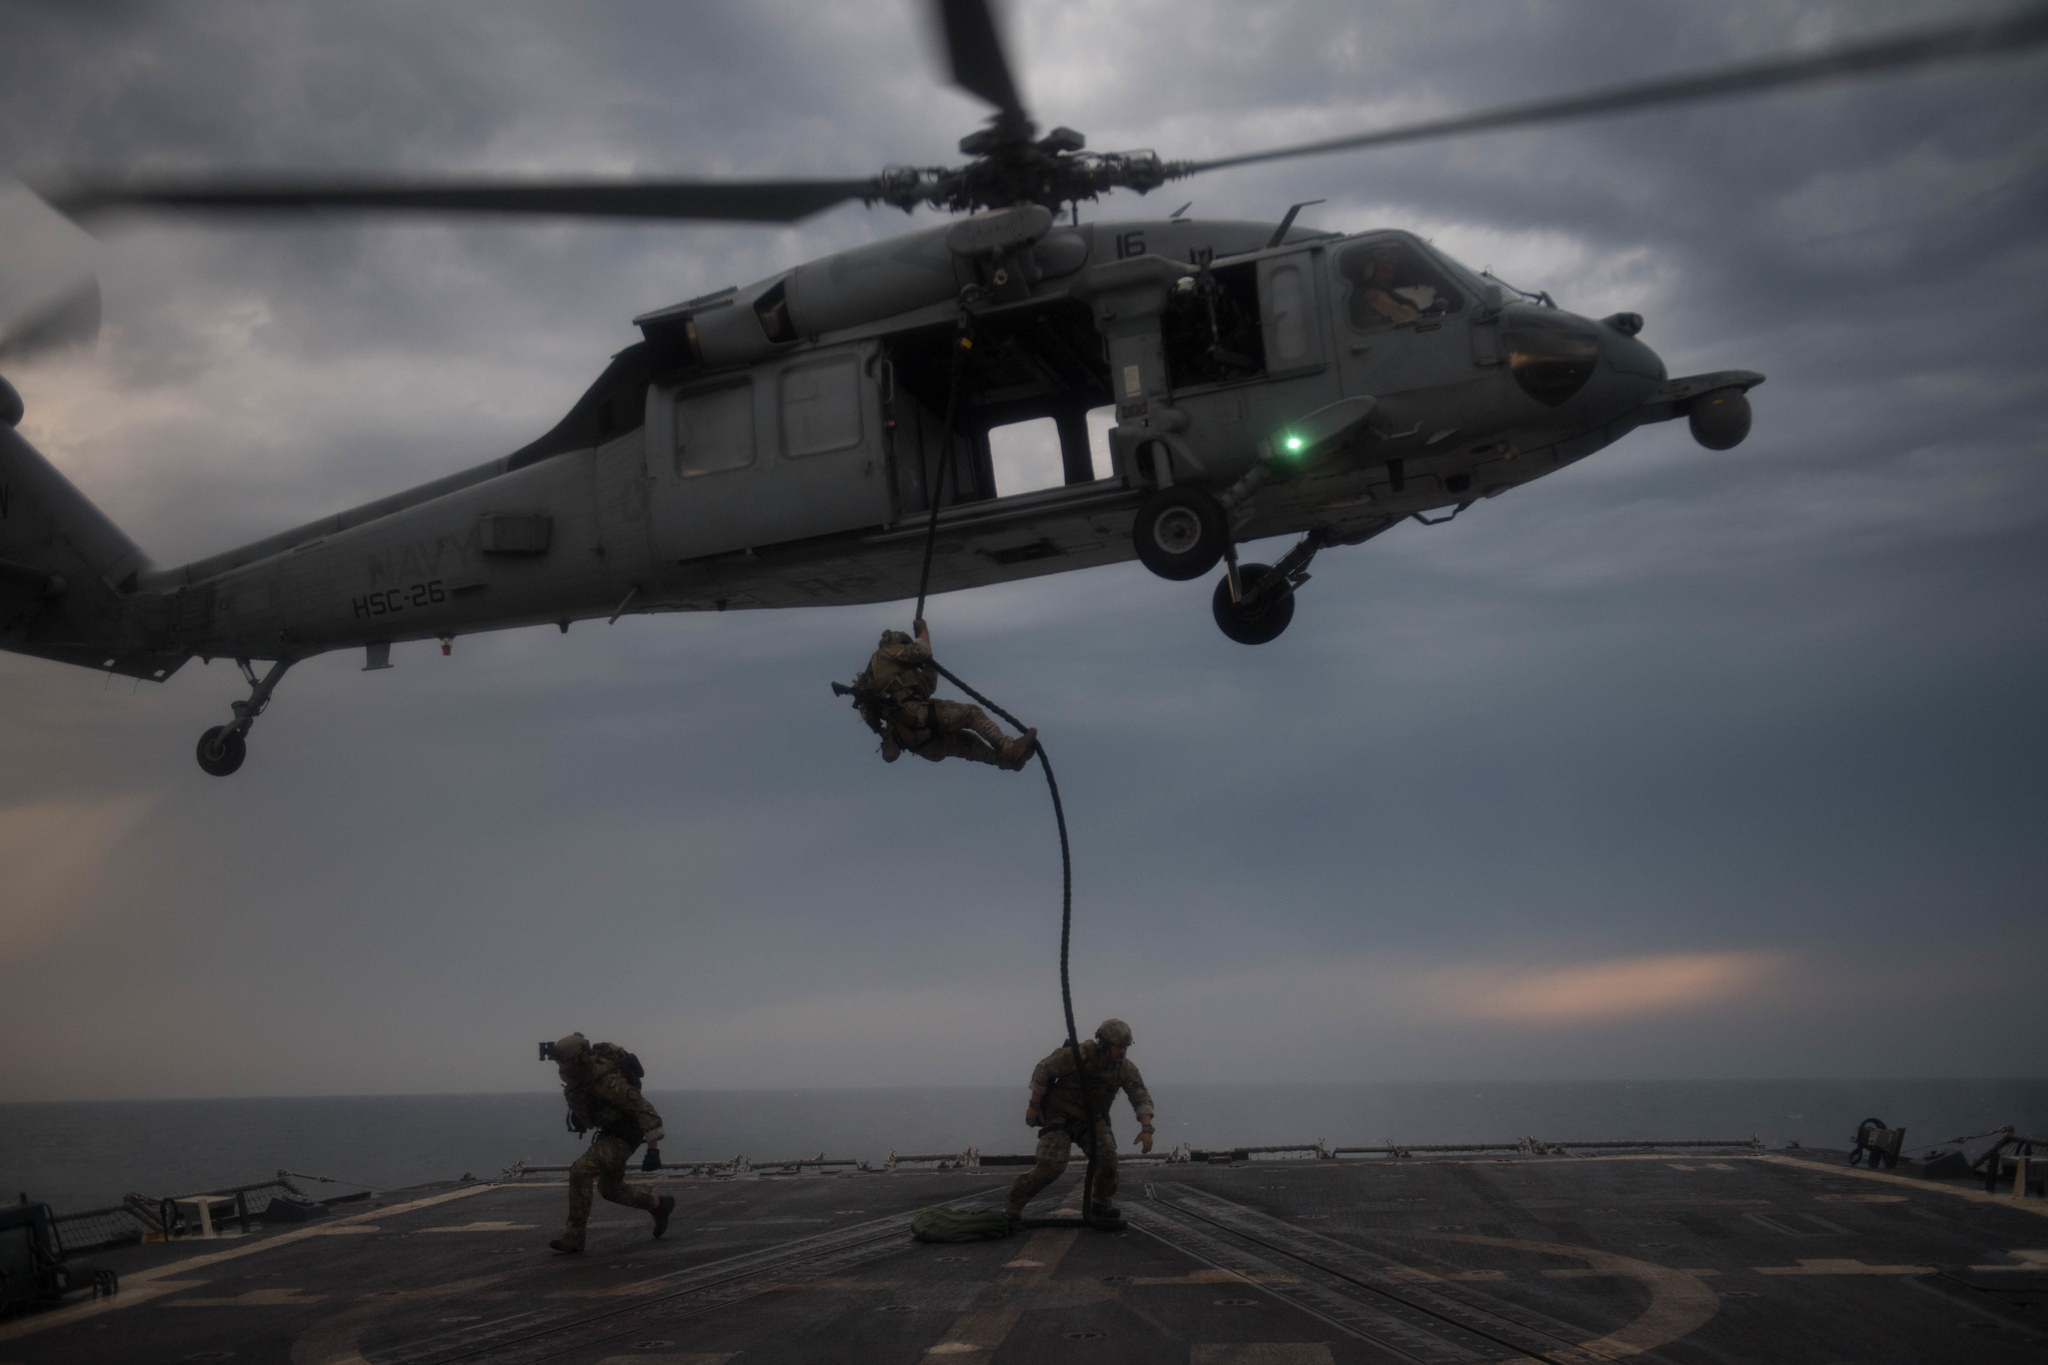 U.S. Coast Guard Maritime Security Reaction Team members rappel onto the flight deck of the guided-missile destroyer USS Chung-Hoon (DDG 93) from an MH-60S Sea Hawk on March 14, 2019, during an insertion training exercise in the Arabian Gulf. (Mass Communication Specialist 2nd Class Logan C. Kellums/Navy)